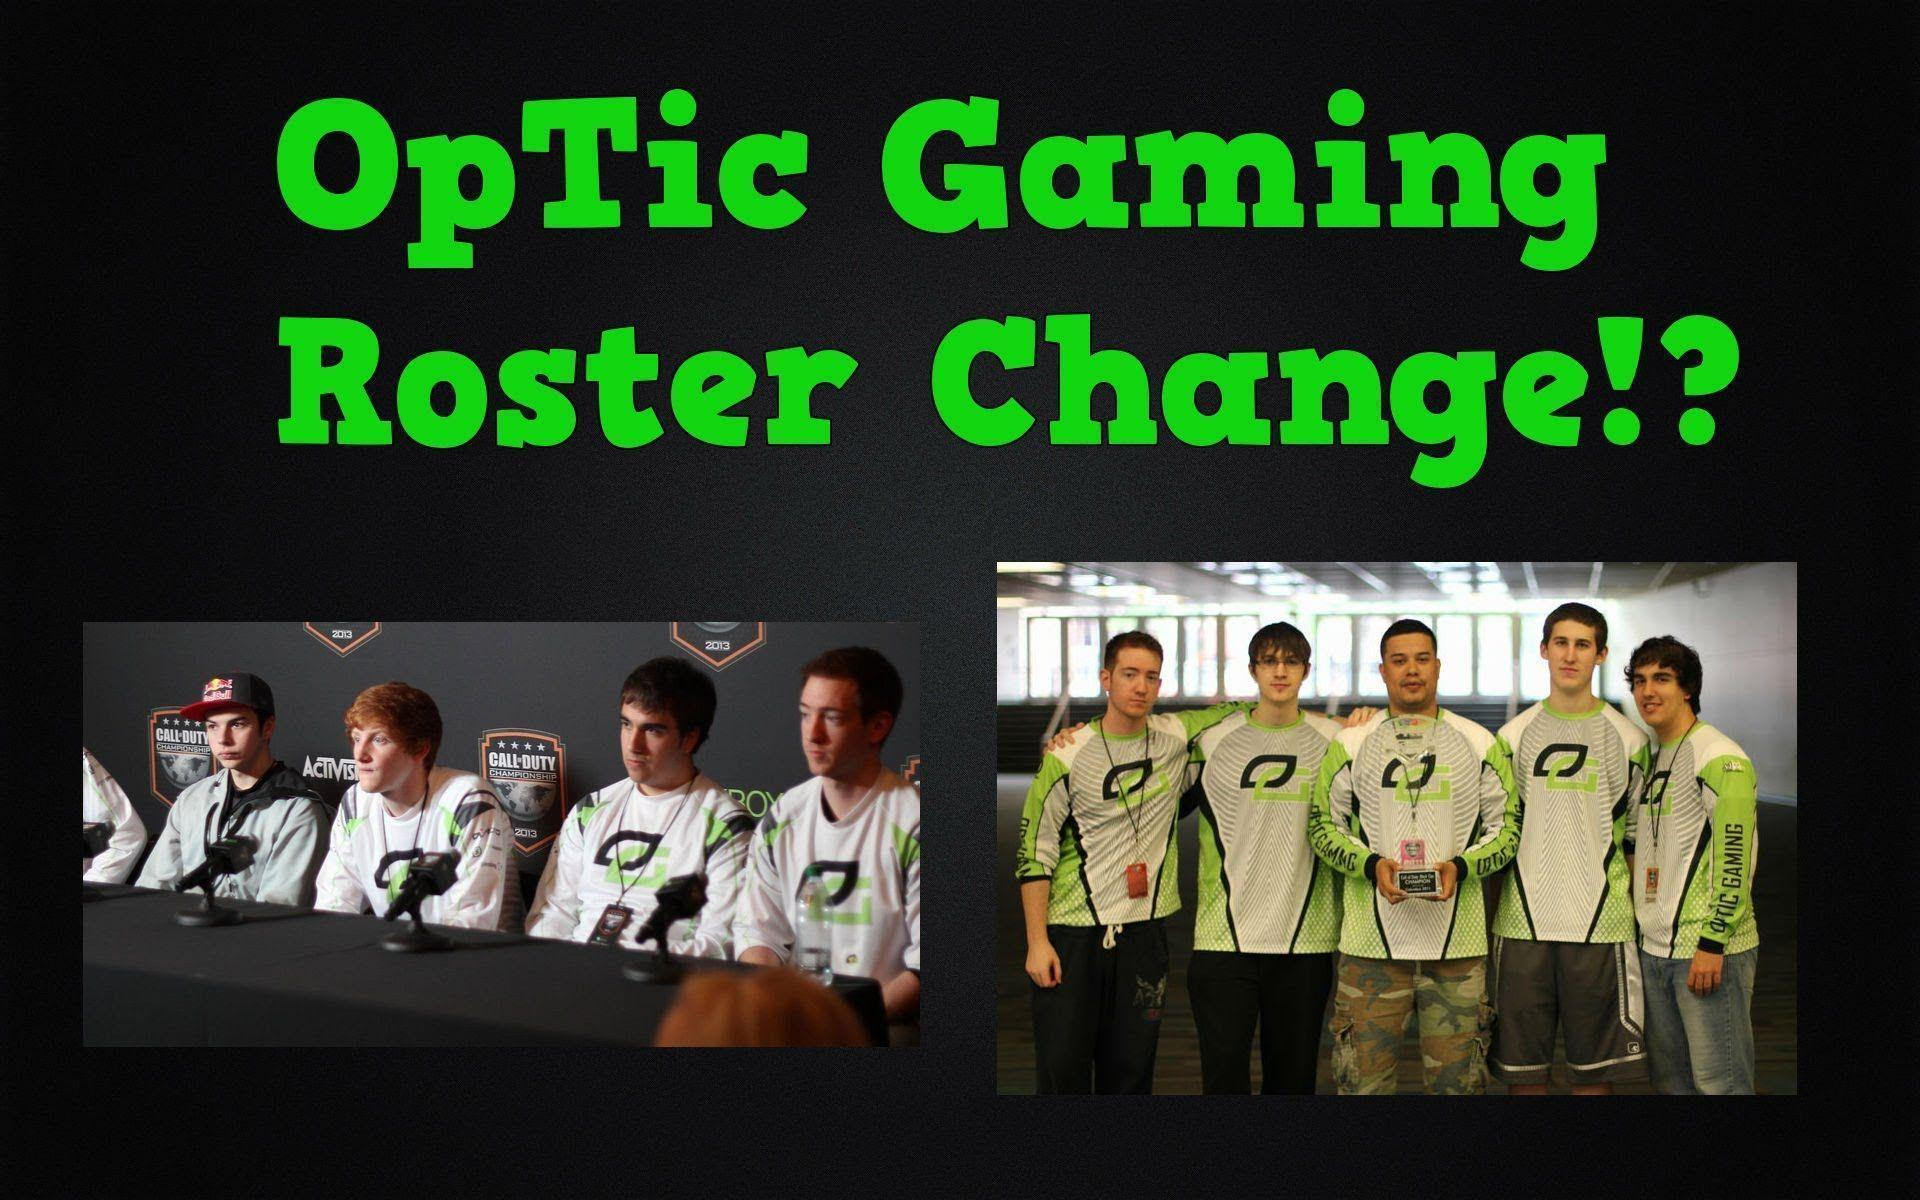 Game Wallpaper: Optic Gaming Green Wall HD Resolution Wallpapers